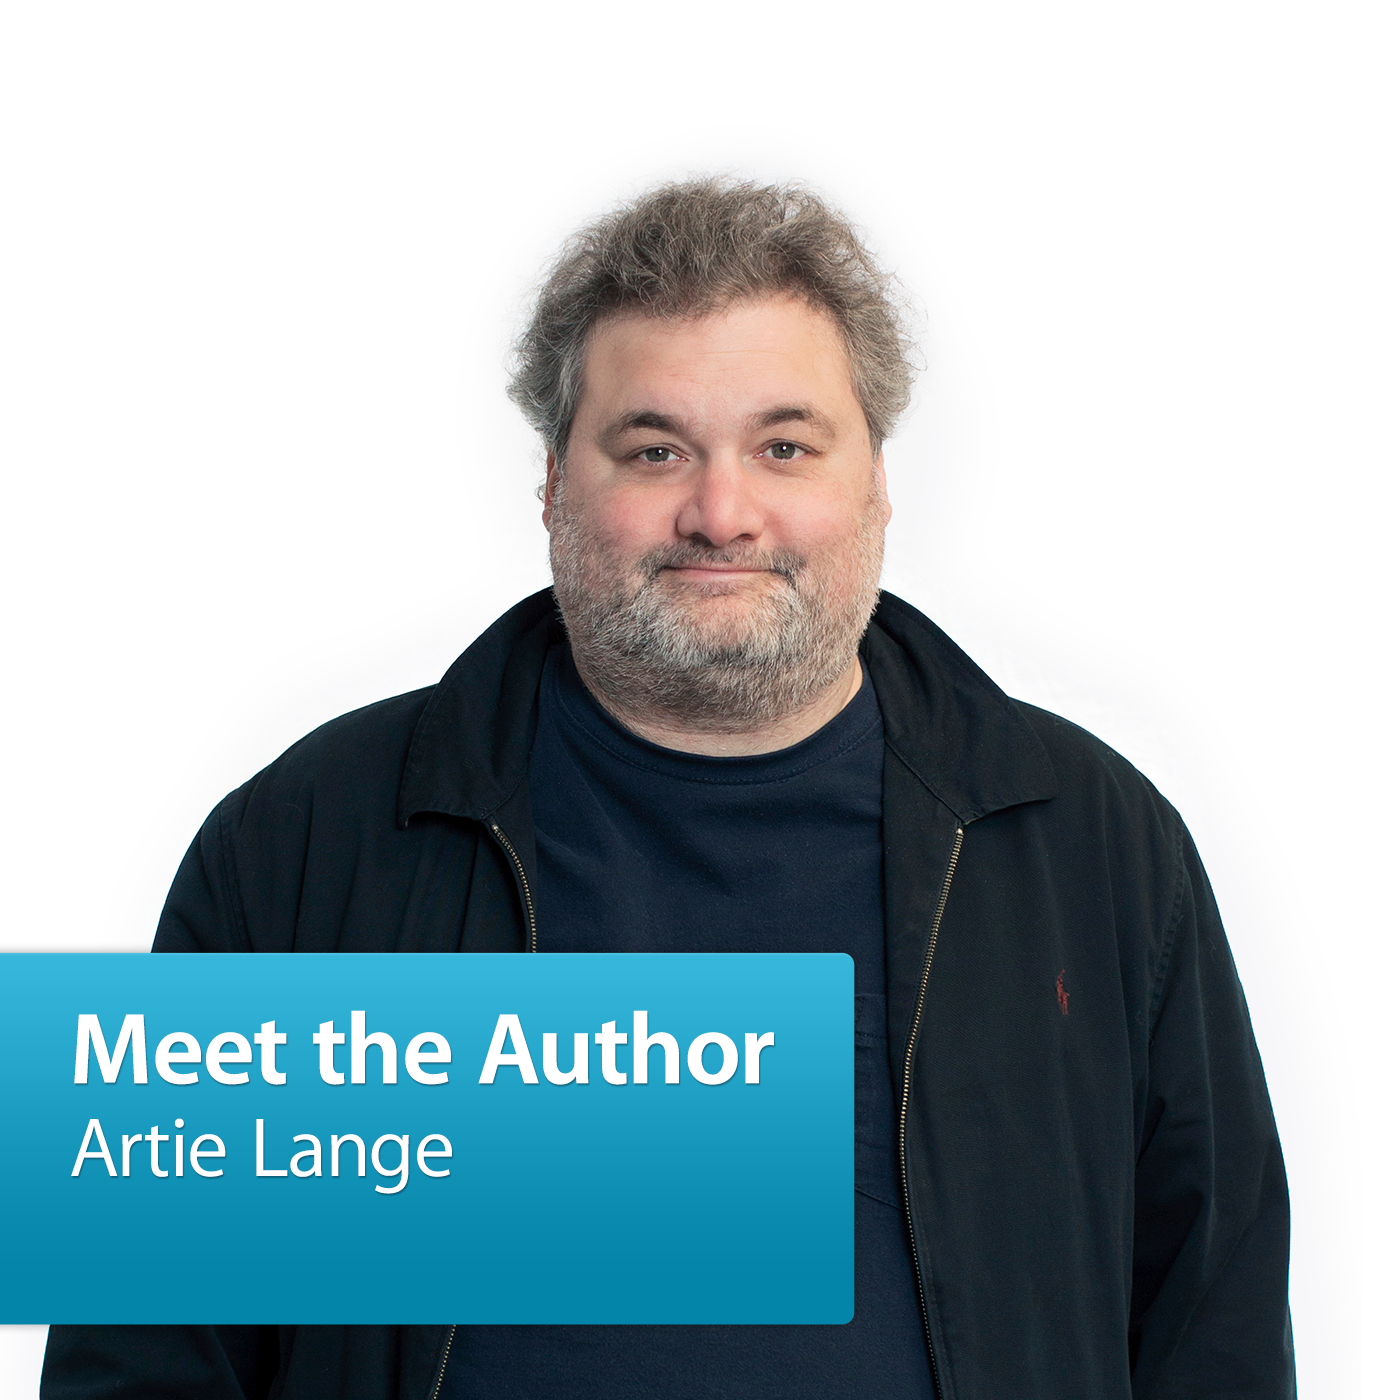 Artie Lange: Meet the Author